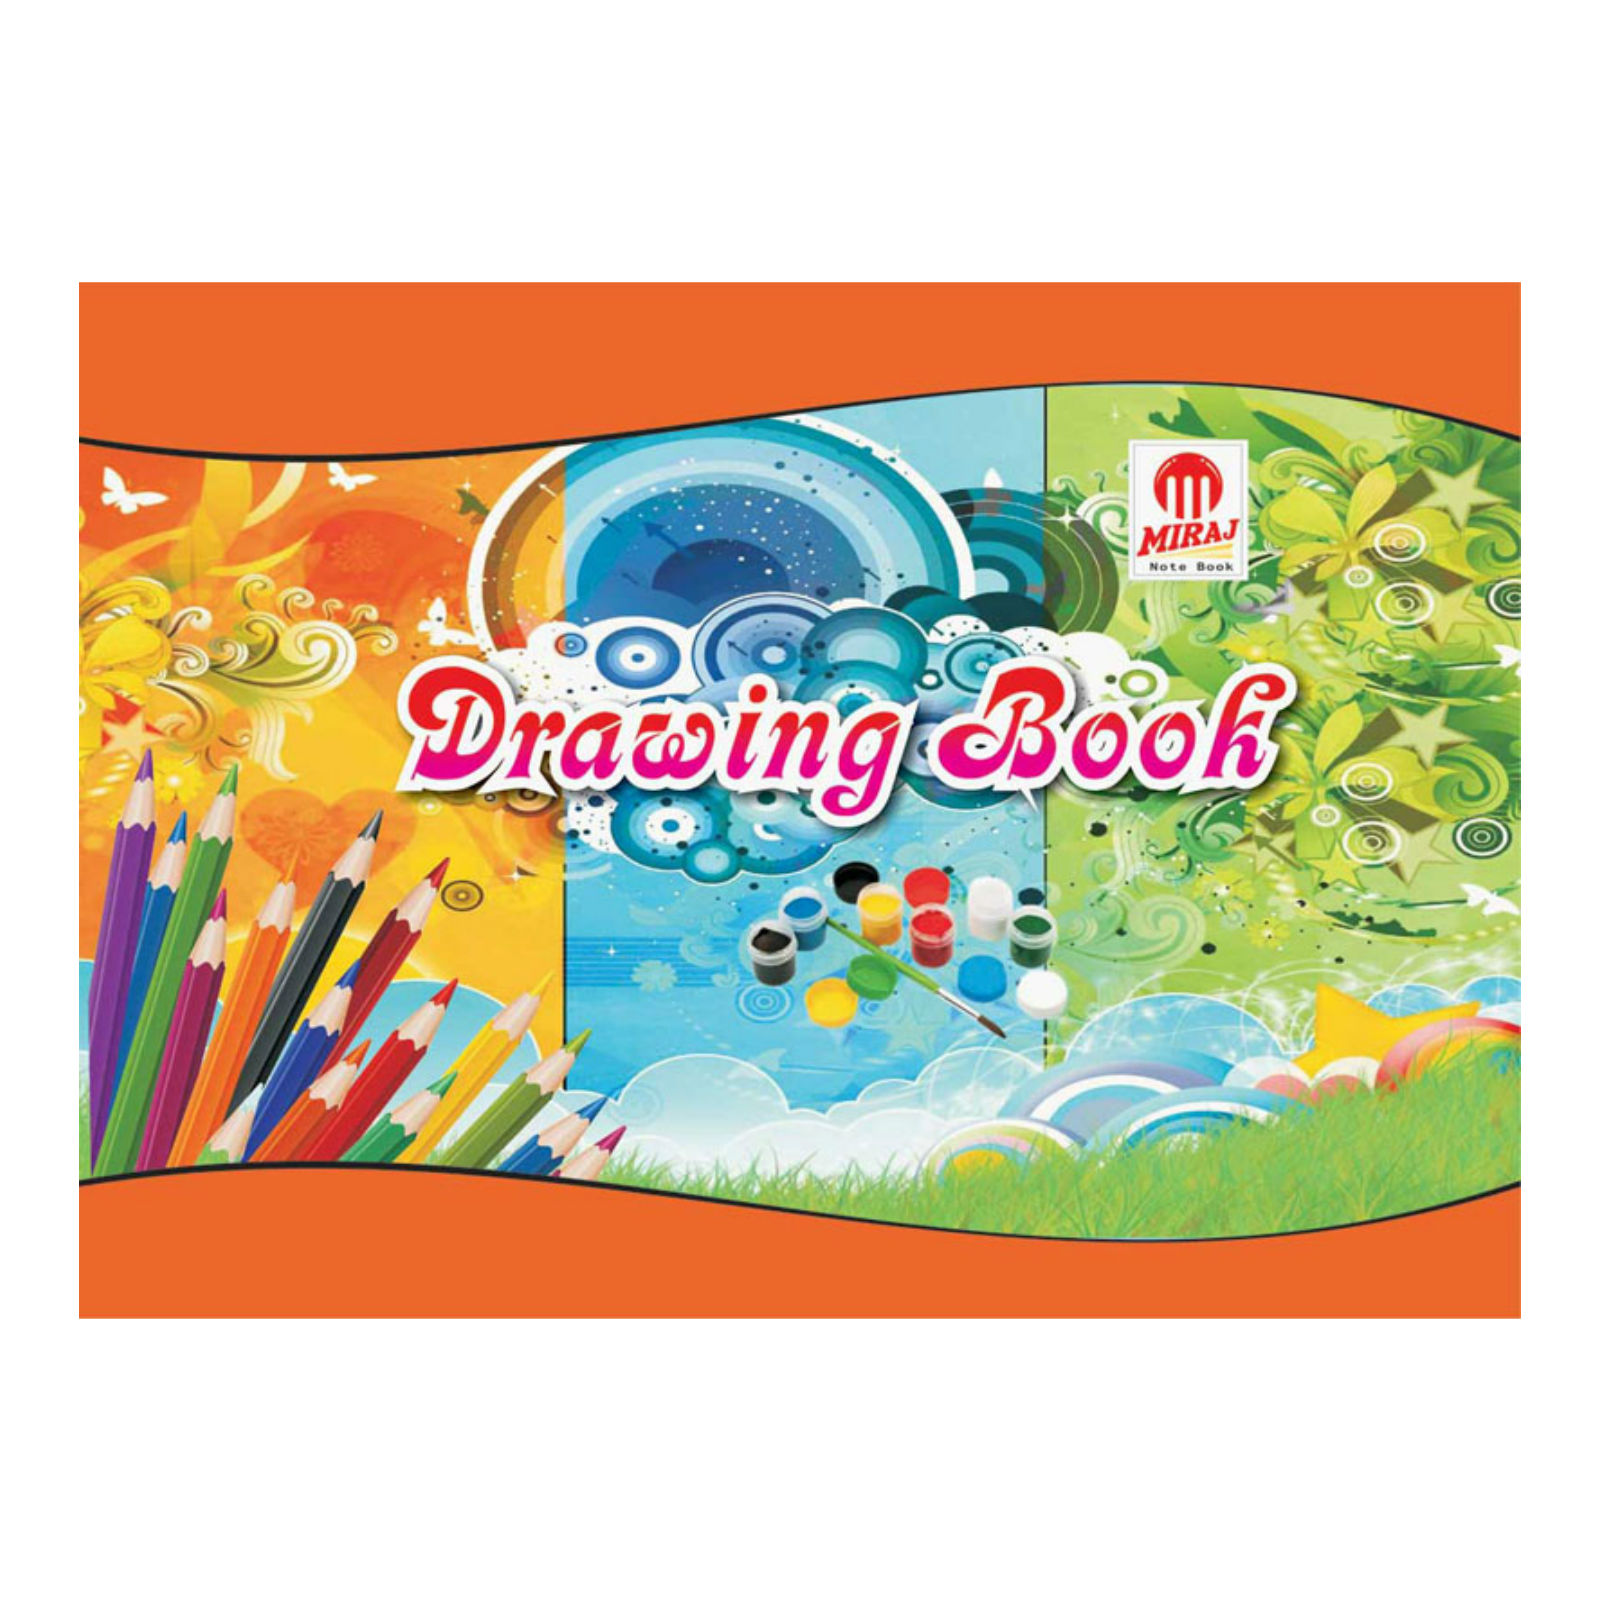 drawing book stationery items wholesale supplier in gurgaon